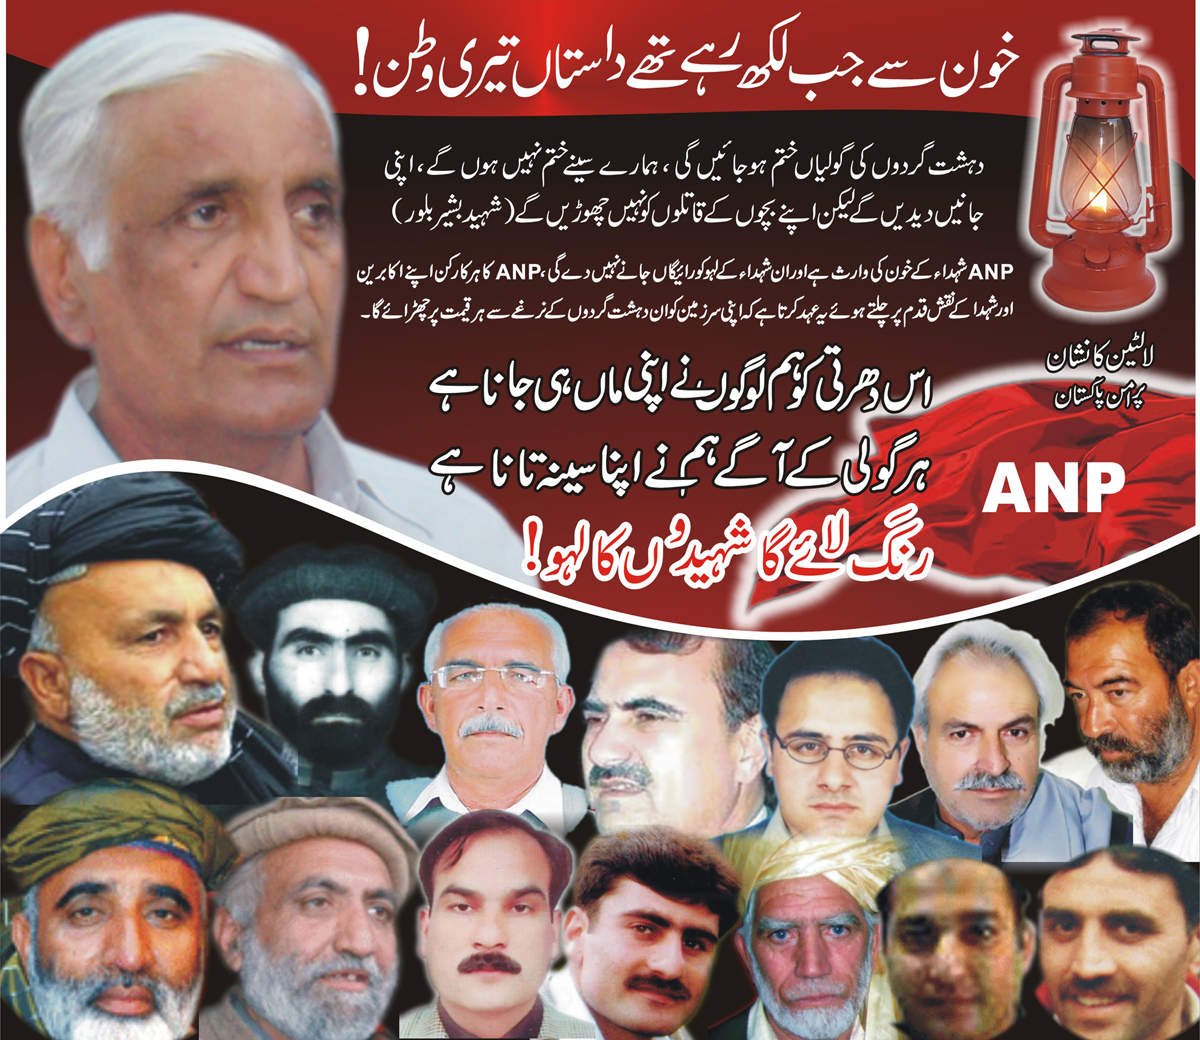 A recent poster of ANP showing ANP members assassinated by extreme Islamist organizations.